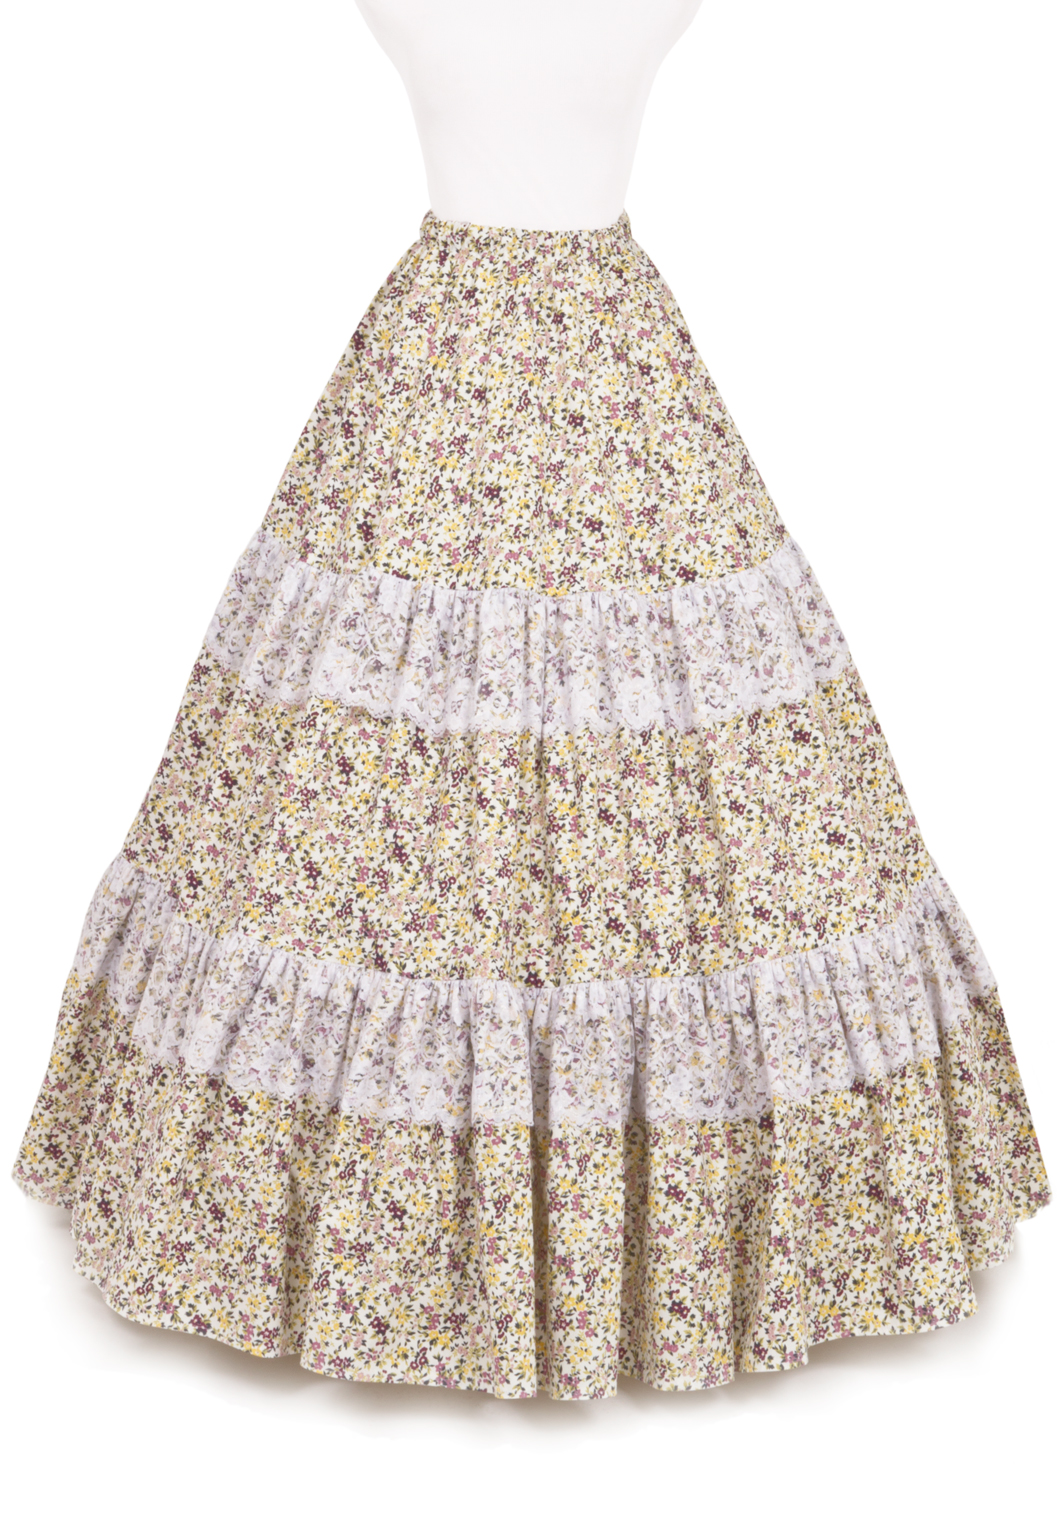 Kady Bell Civil War Skirt